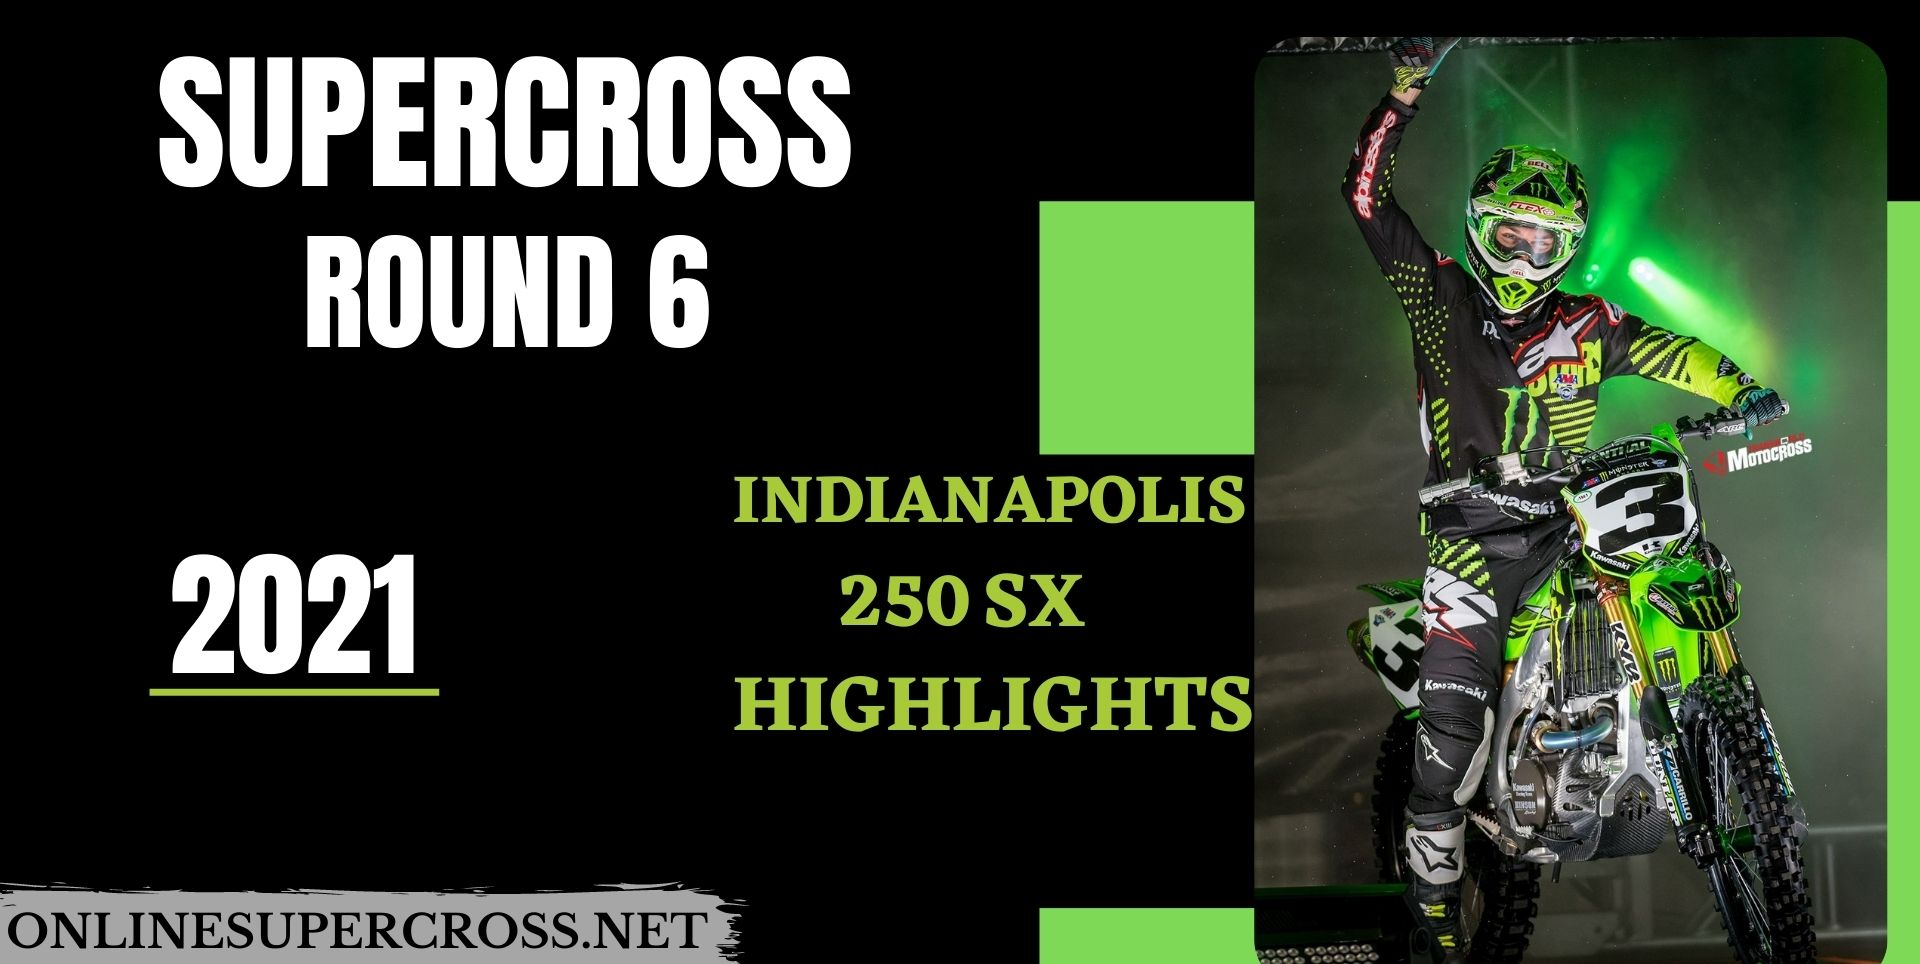 Indianapolis Round 6 Supercross 250SX Highlights 2021